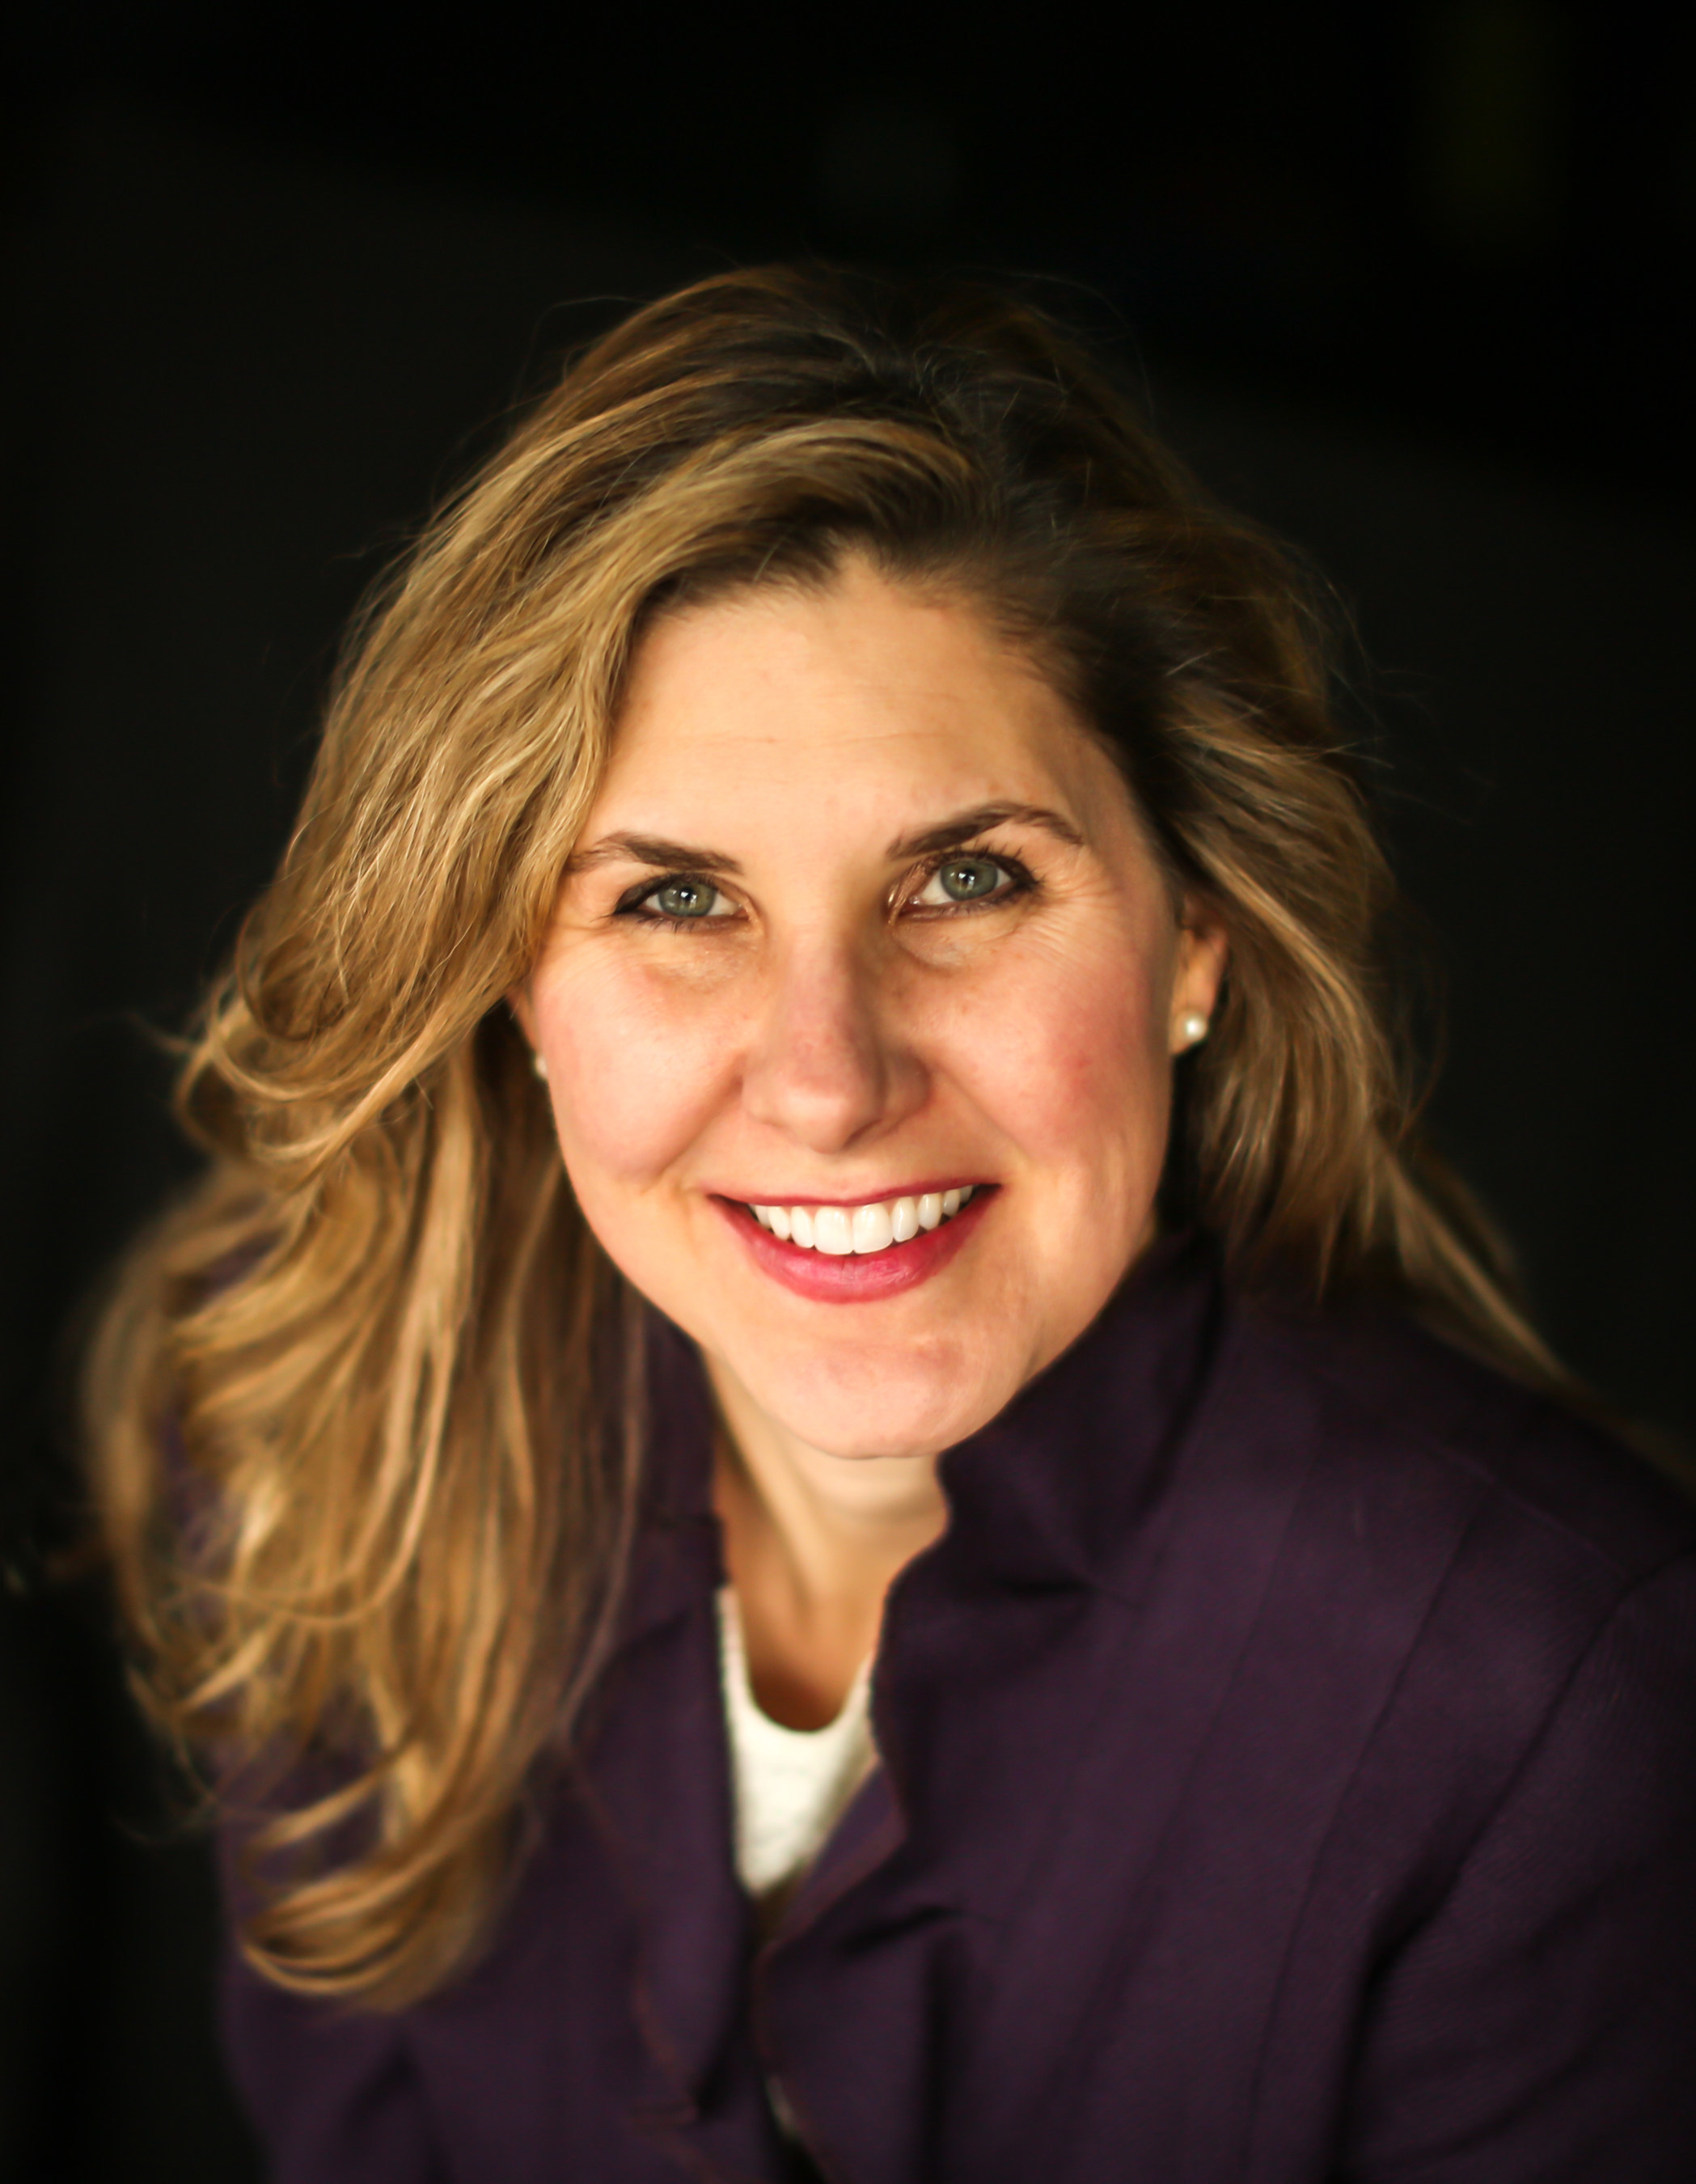 Erika Goldwater, Vice President of Marketing for ANNUITAS, has been named to the Sales Lead Management Association's 20 Women to Watch list for 2015.